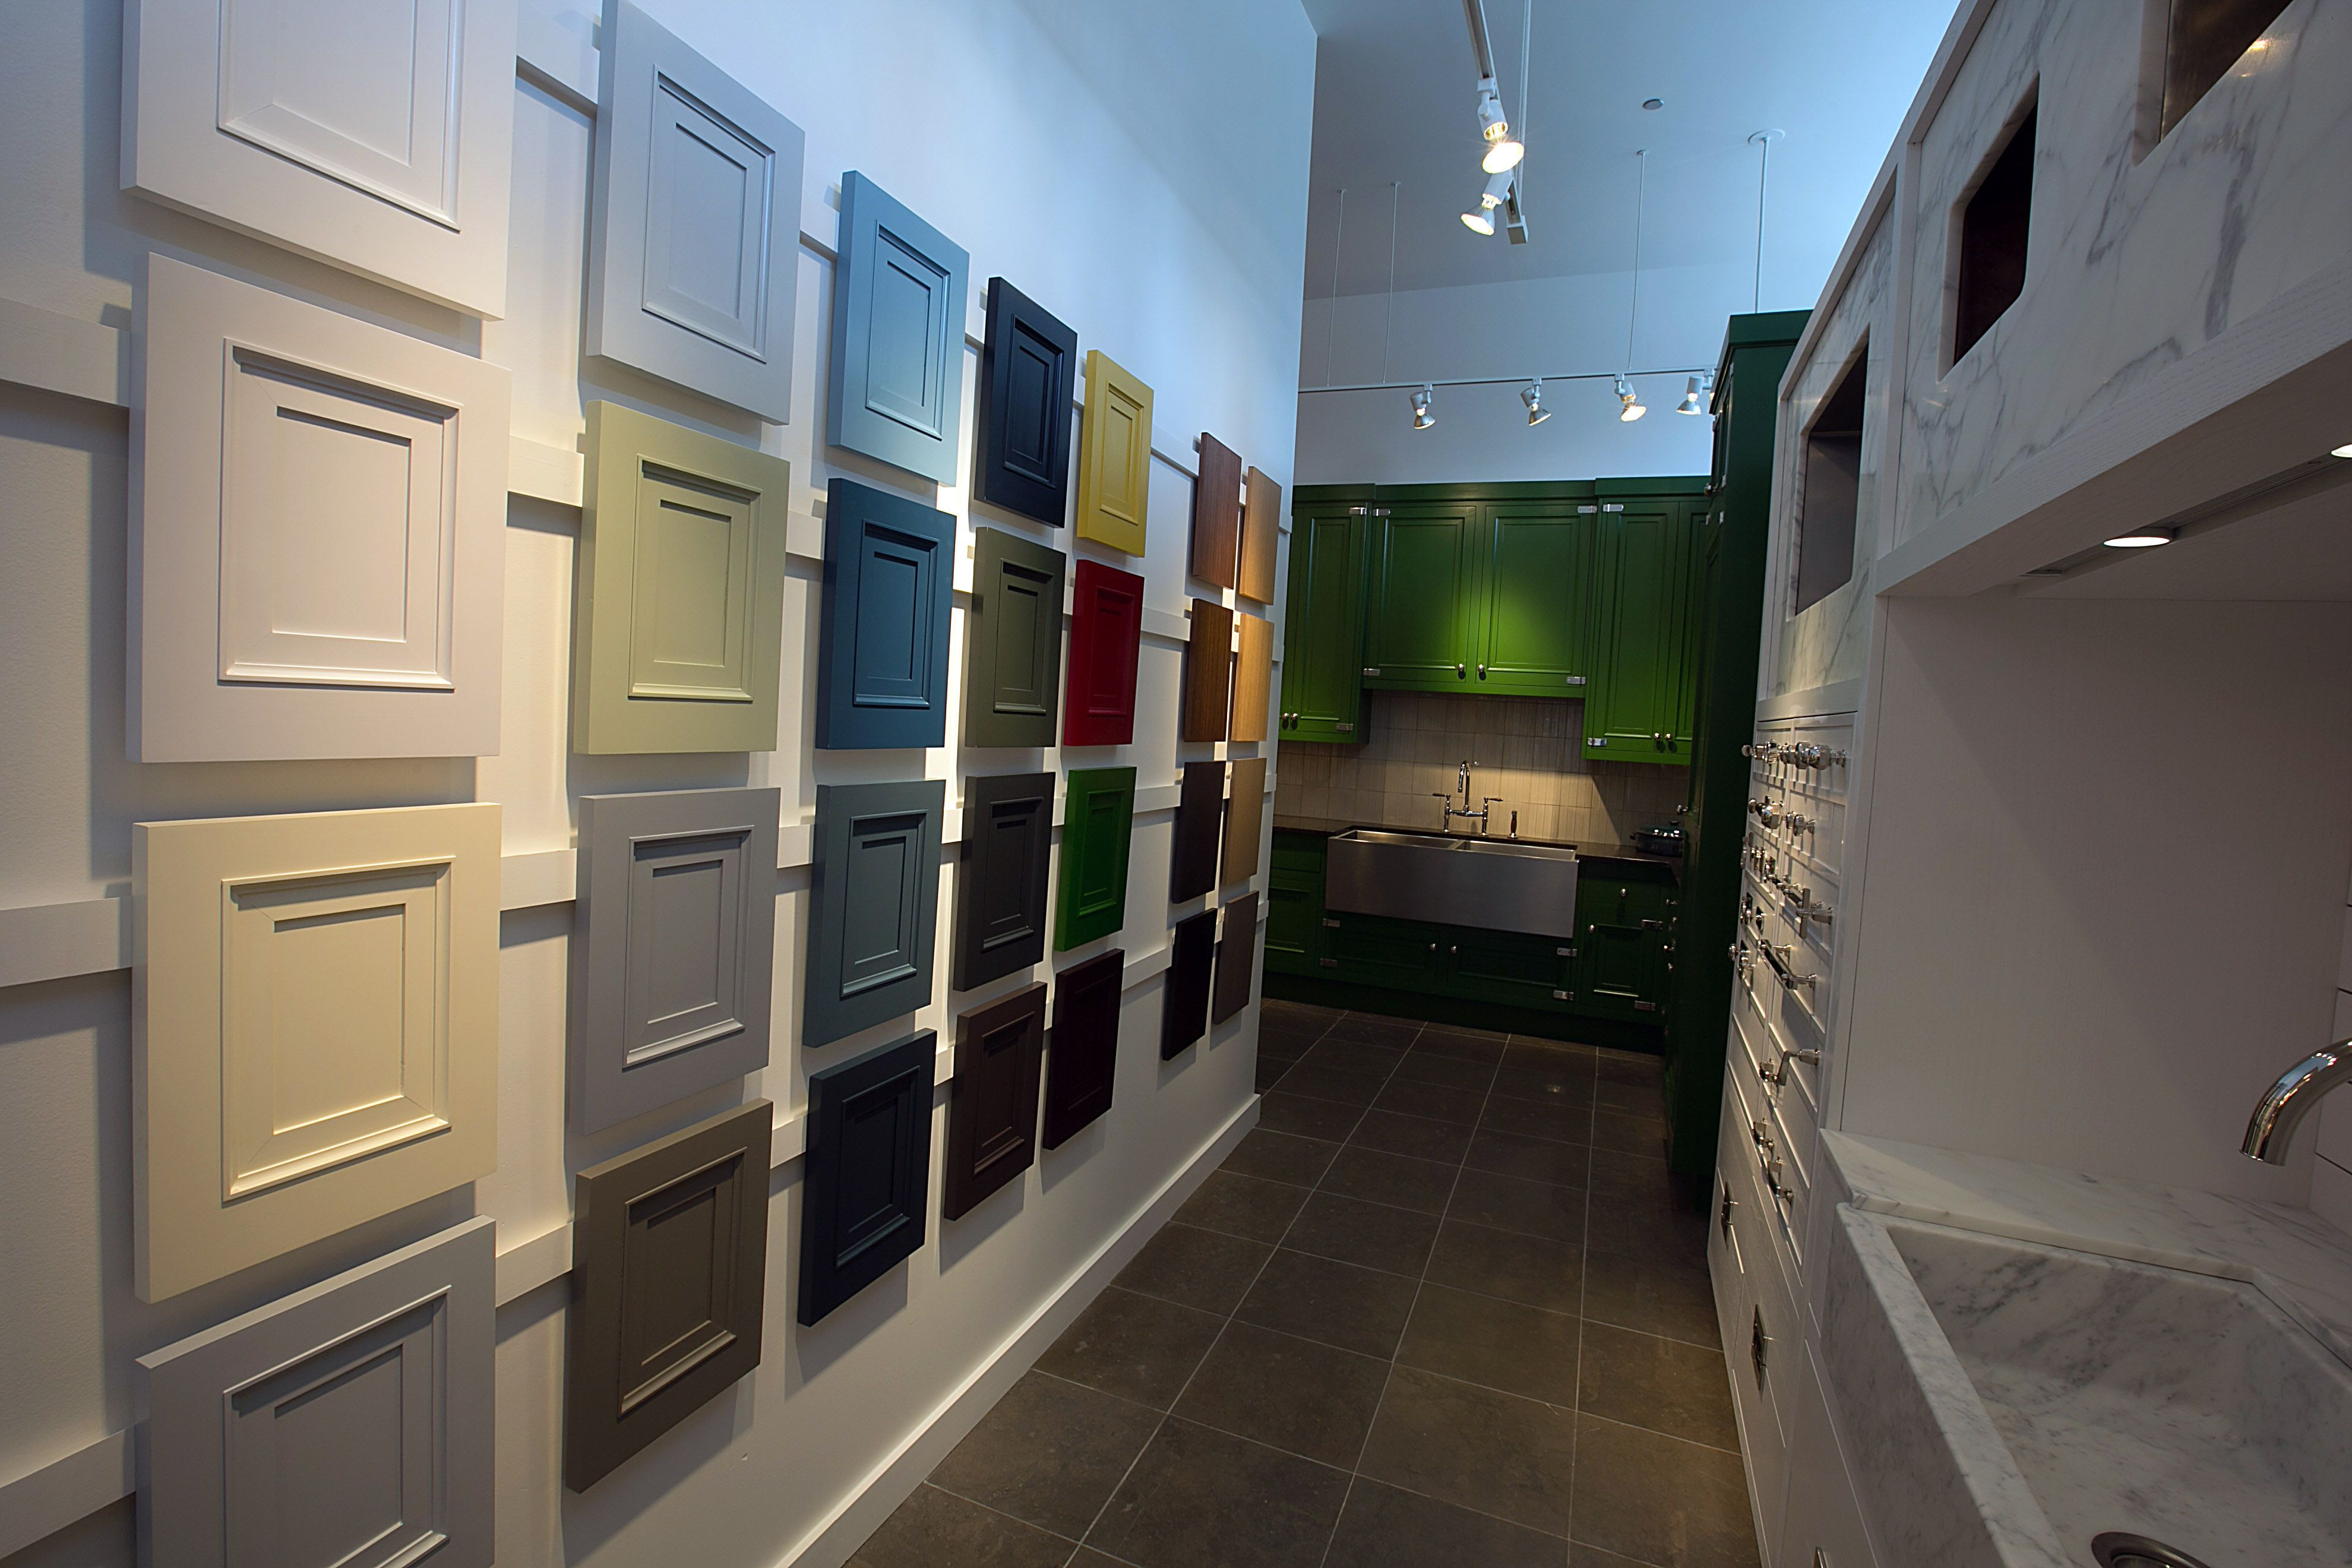 Kitchen Cabinet Showrooms Storage Sets For Waterworks Color And Wood Species In